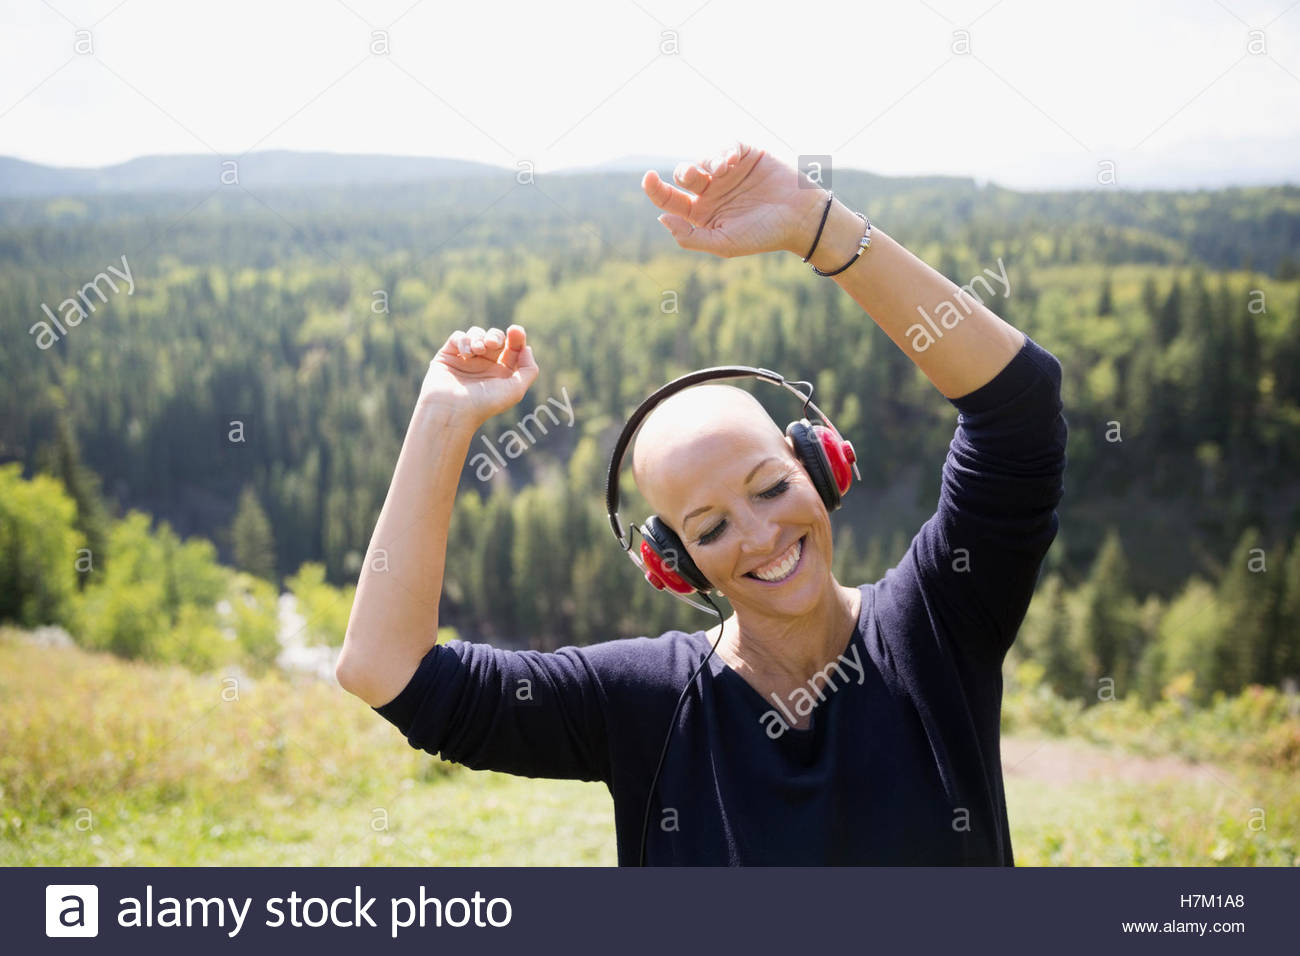 Female cancer survivor with shaved head dancing listening to music with headphones on sunny remote hilltop - Stock Image